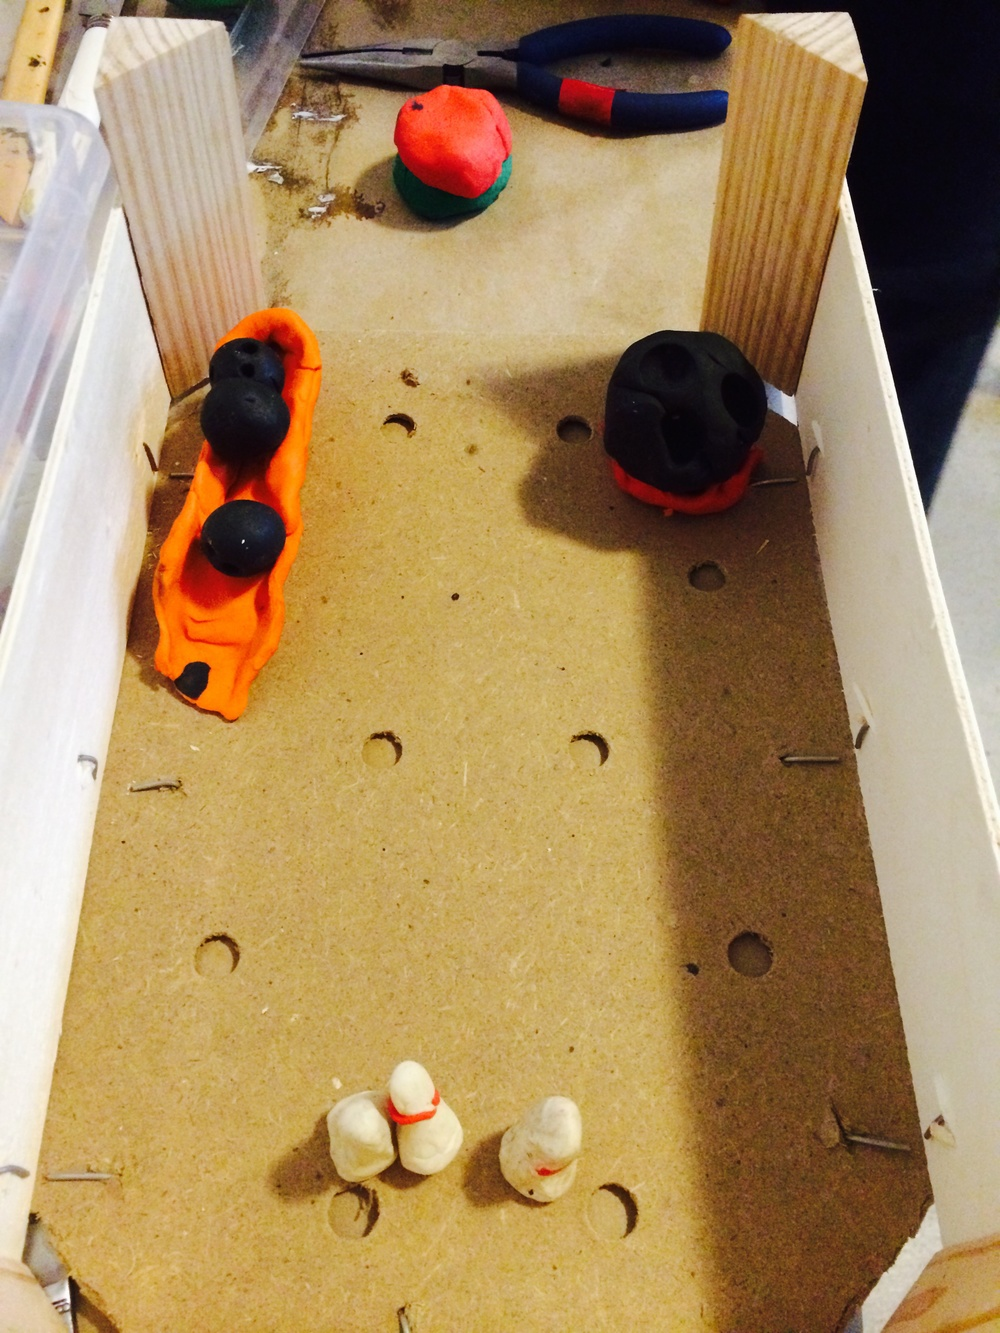 Bowling alley!!!  From an adapted orange crate and plasticine.